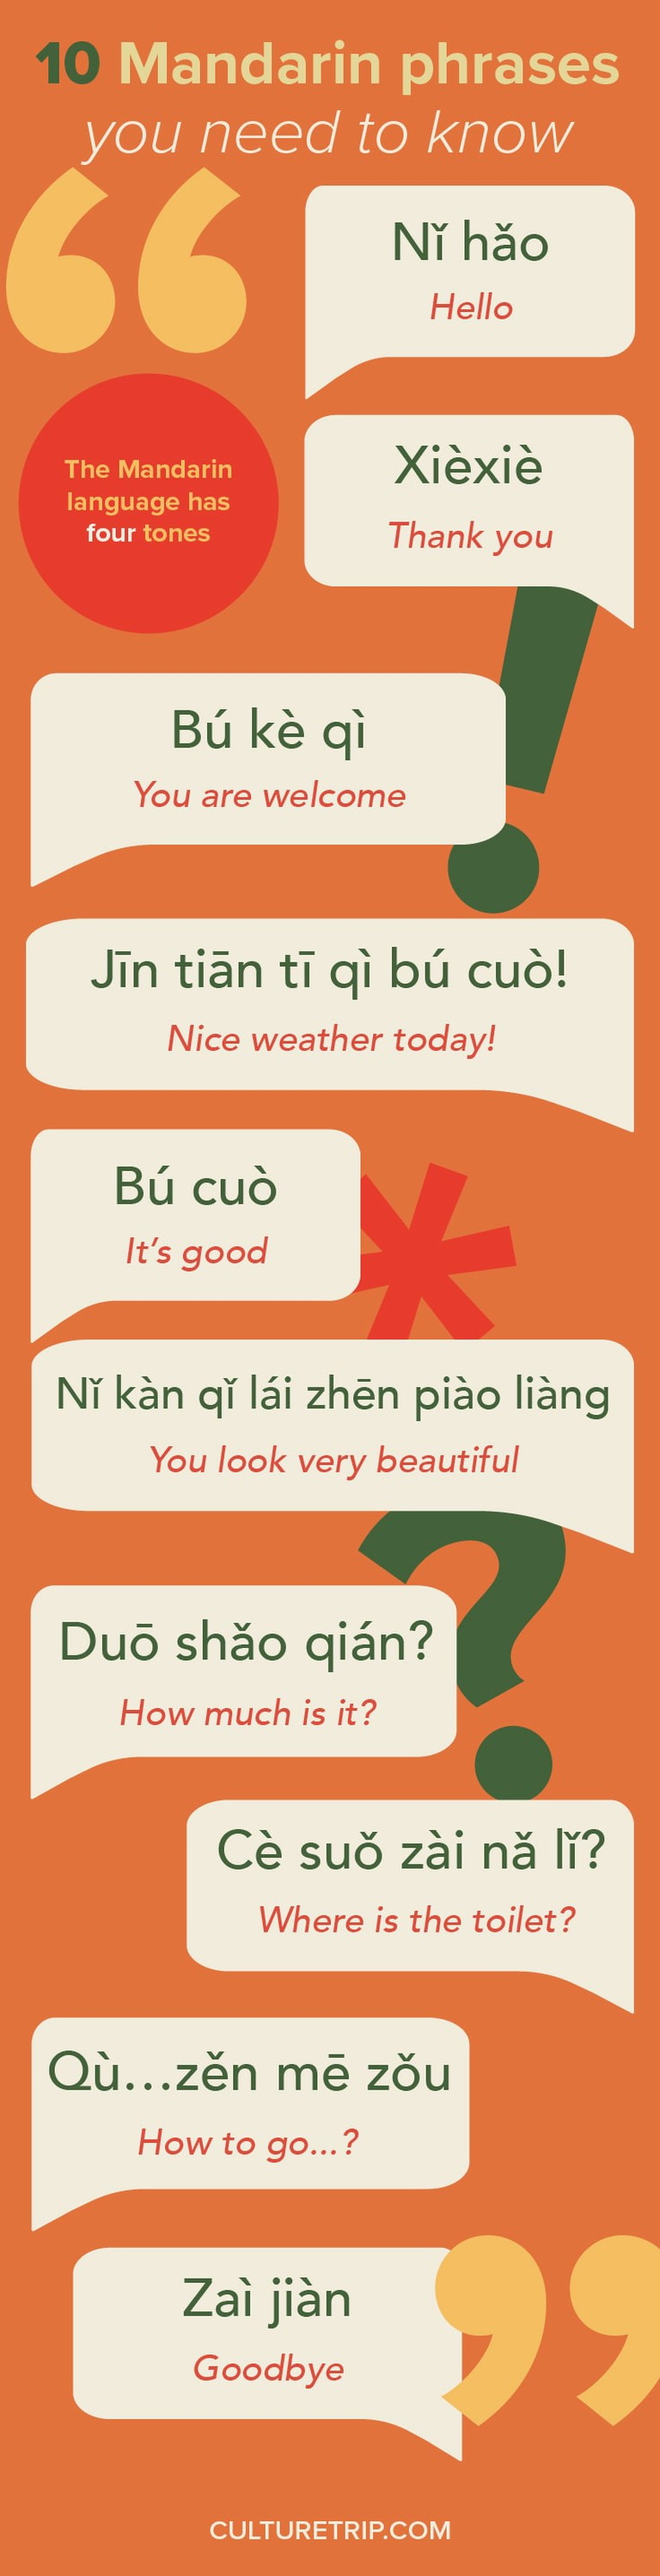 Mandarin phrases